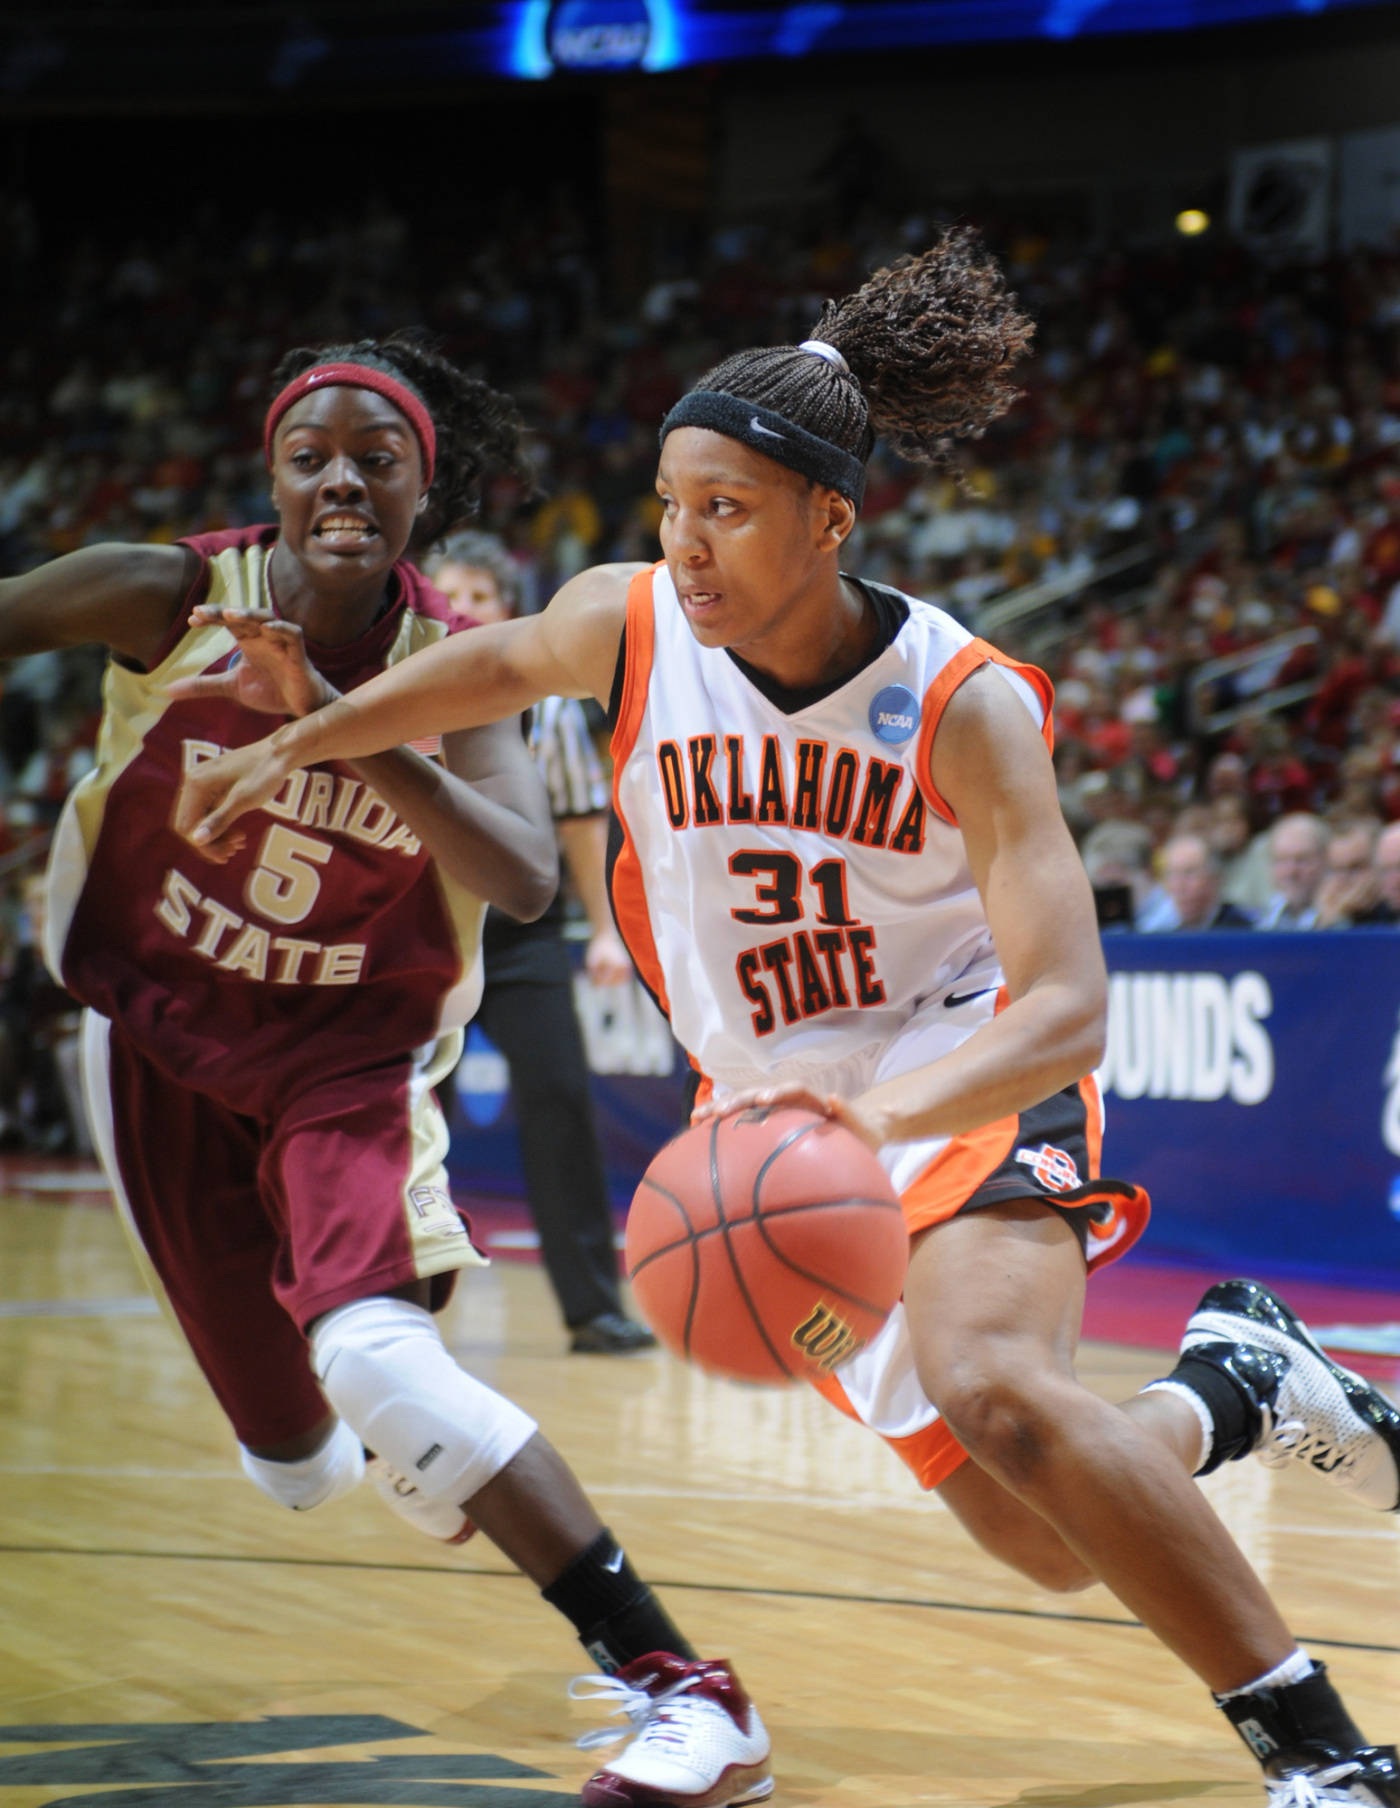 Oklahoma State's Danielle Green (31) drives to the basket against Florida State's Christian Hunnicutt during the second half of a second round NCAA women's basketball tournament game, Monday March 24, 2008 in Des Moines, Iowa. Green led all scorers with 23 points as Oklahoma State won 73-72. (AP Photo/Steve Pope)